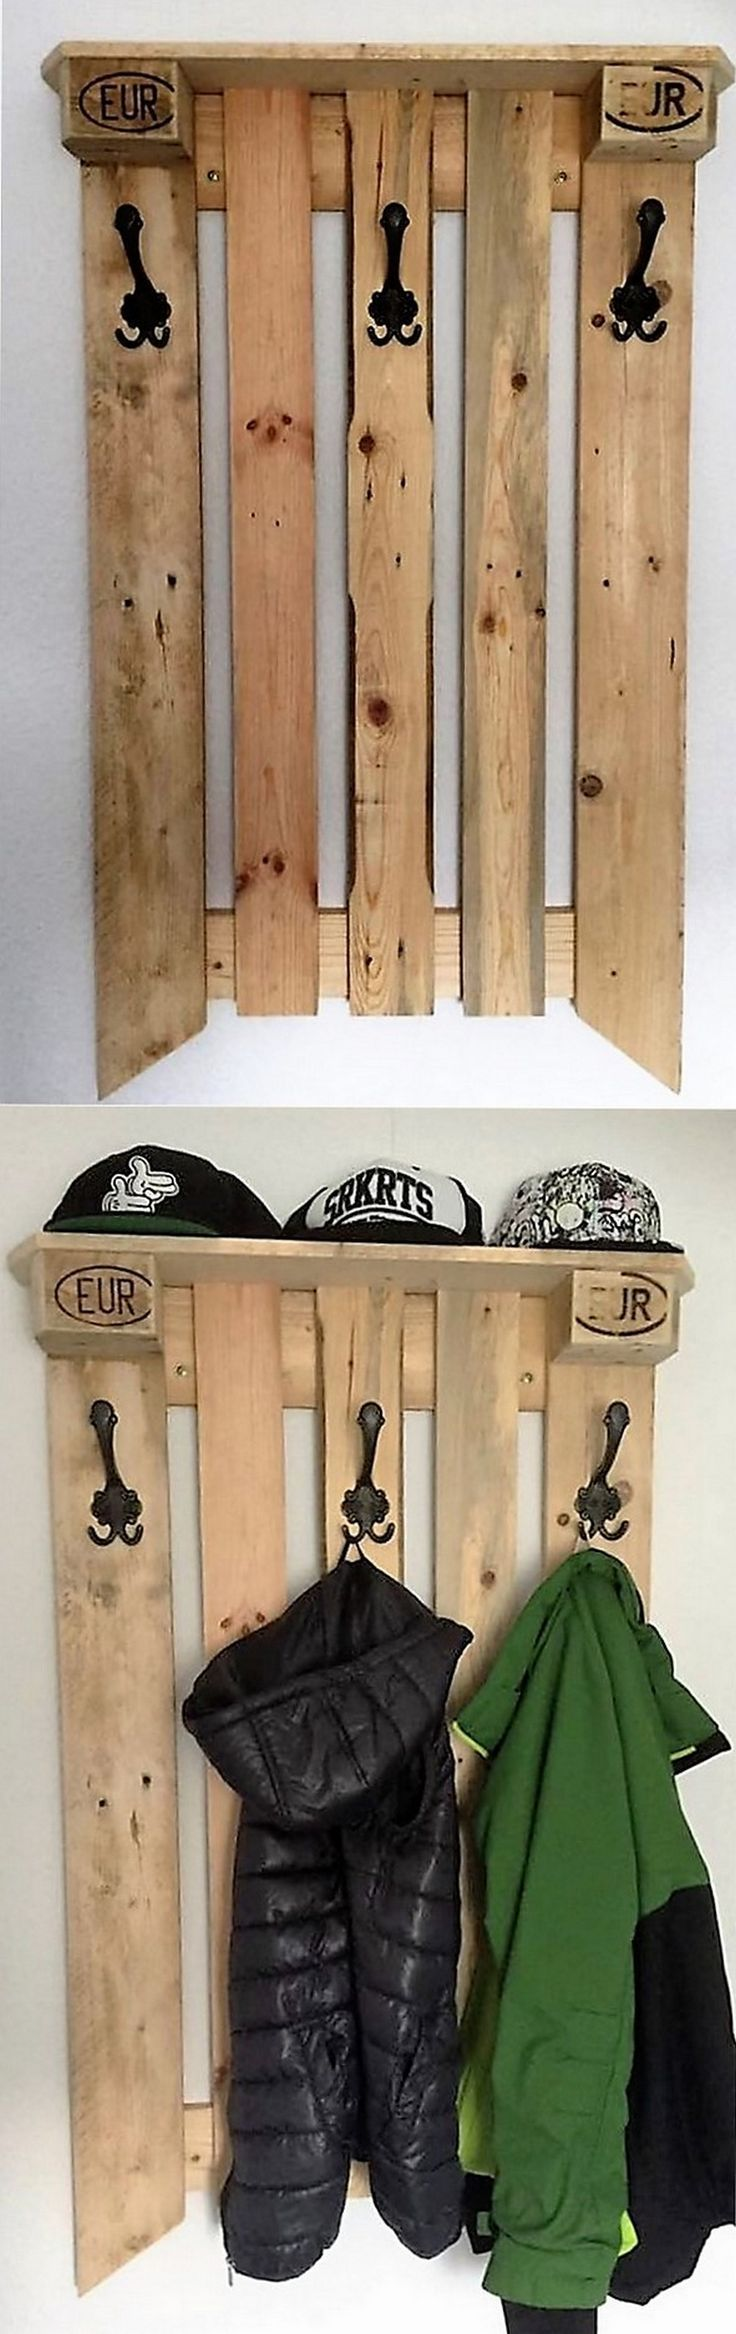 Chest of Drawers from Wooden Pallets Palet tahtası